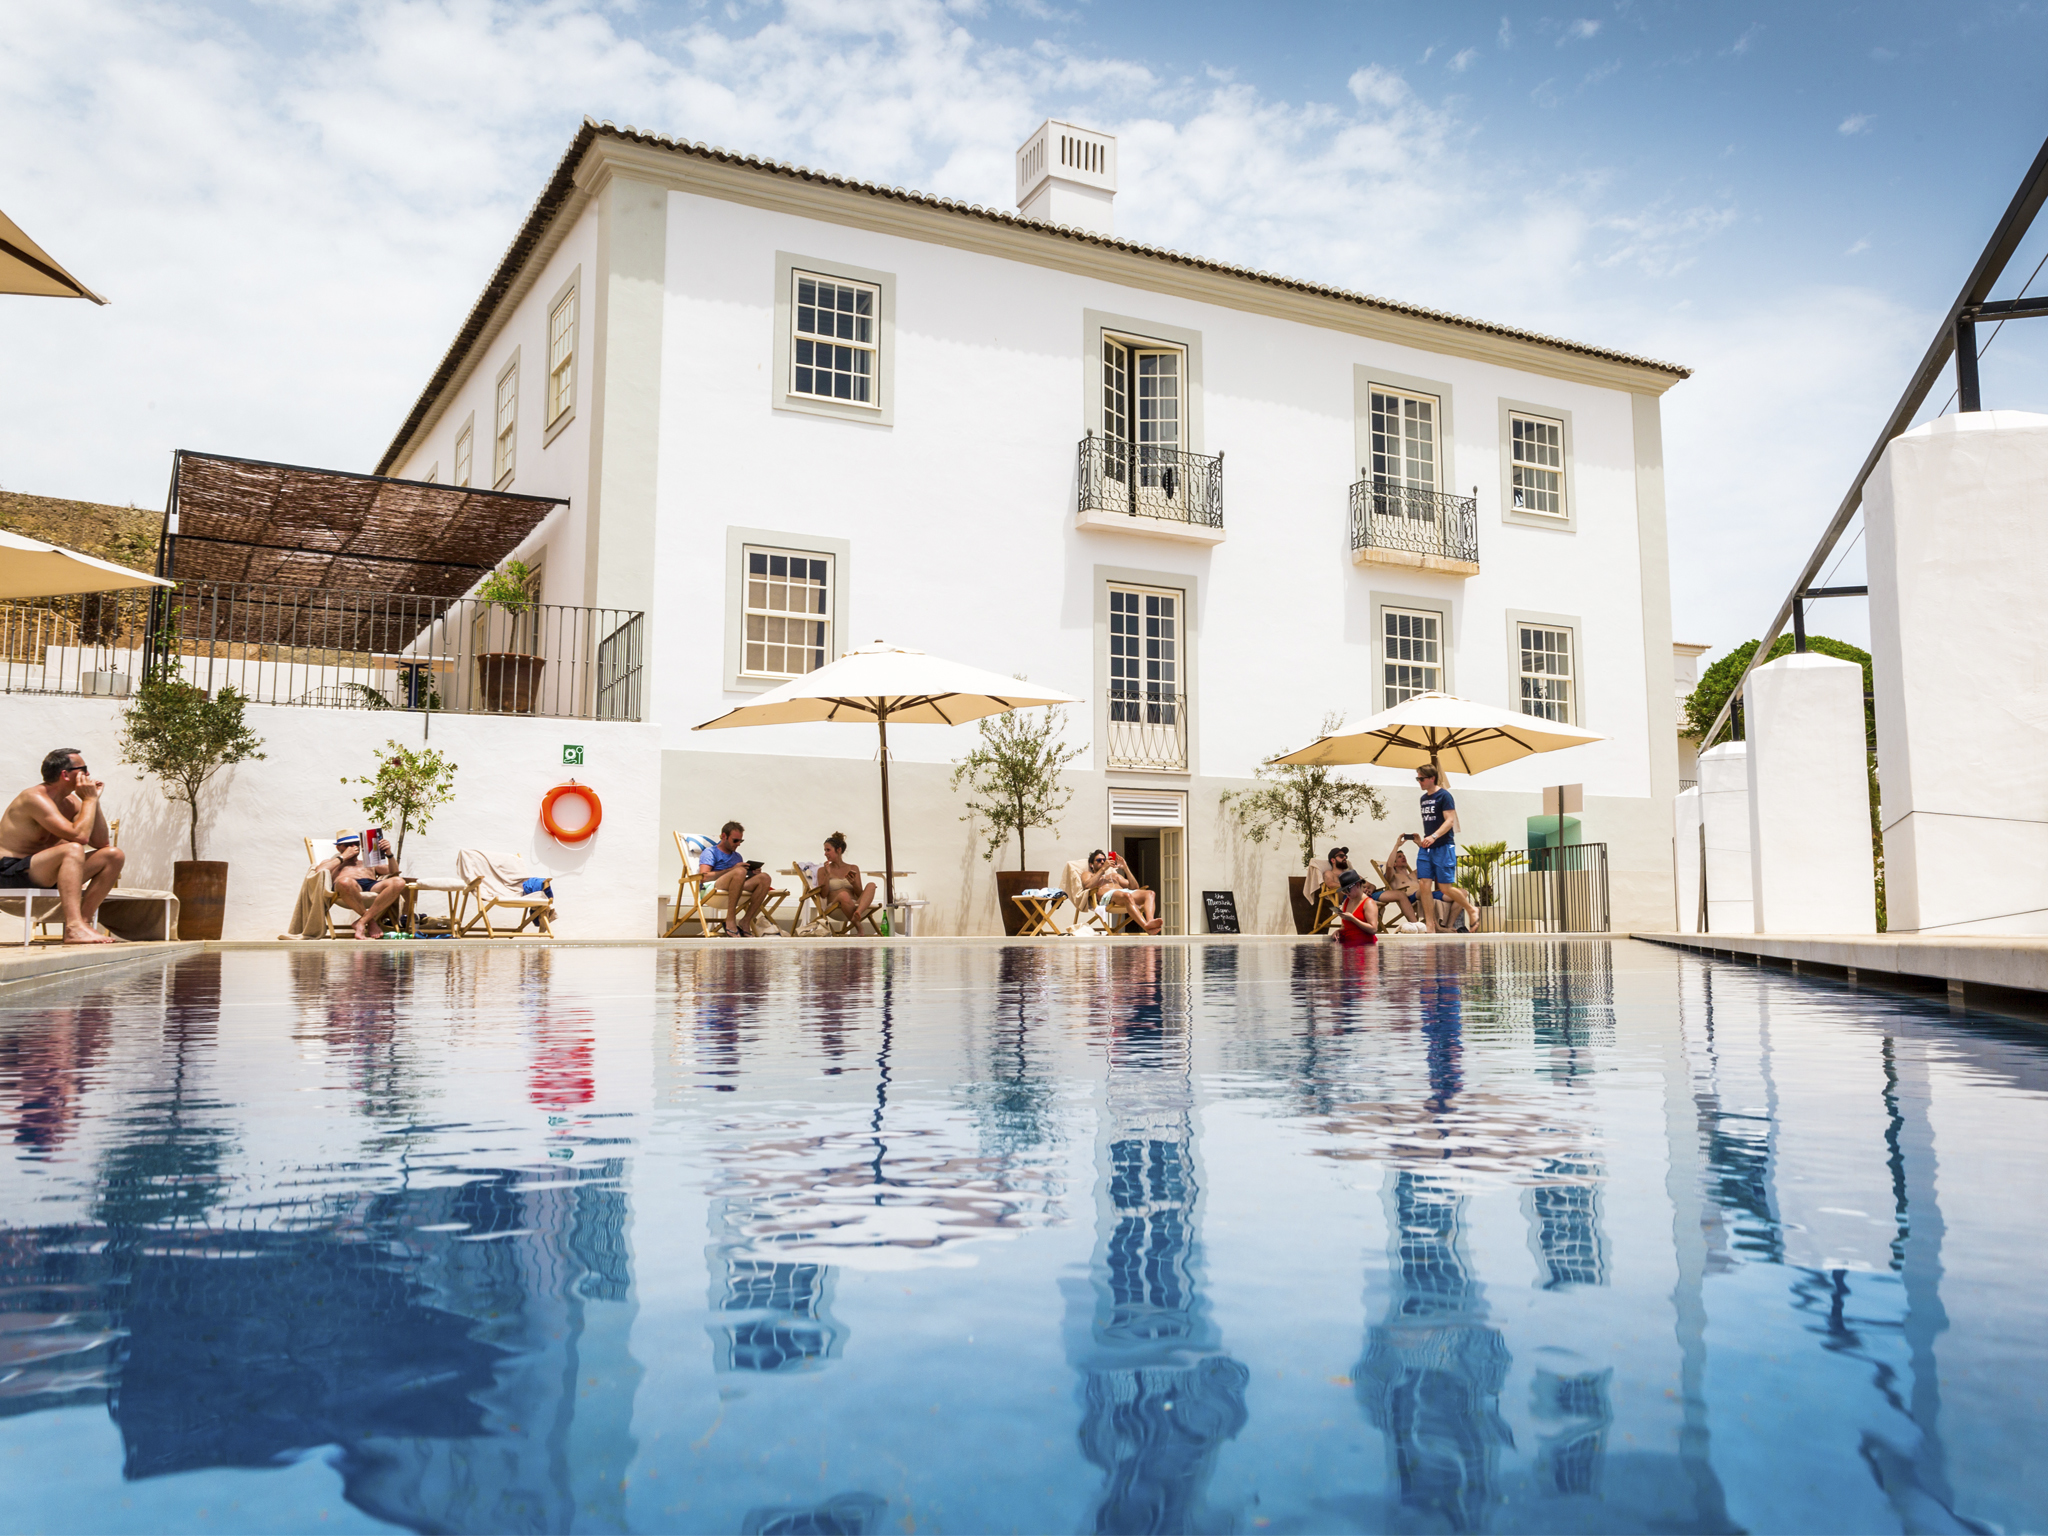 Hotel Tivoli Carvoeiro Algarve Booking The 9 Newest Hotels In Algarve